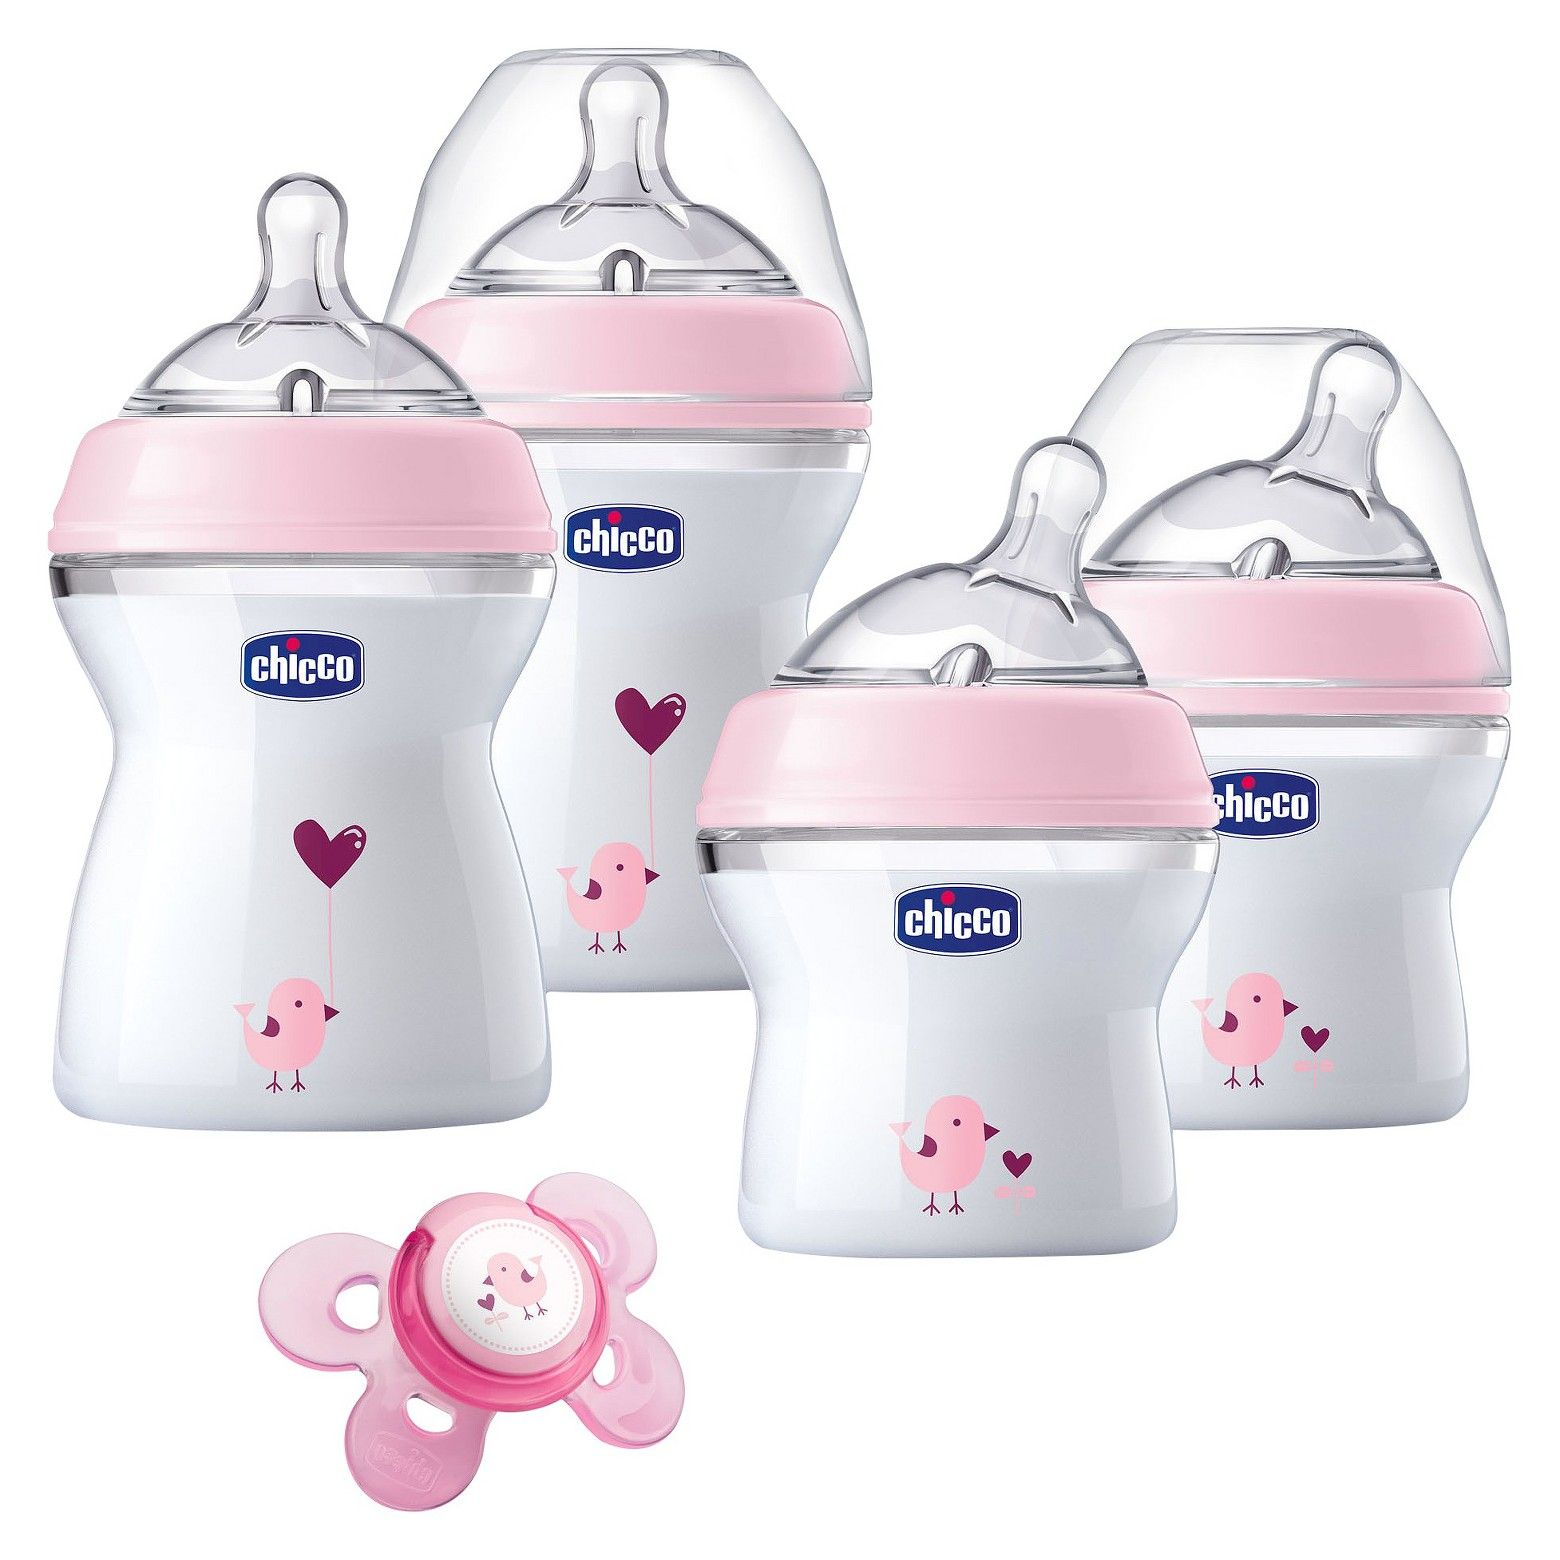 Chicco naturalfit newborn gift set pink with images